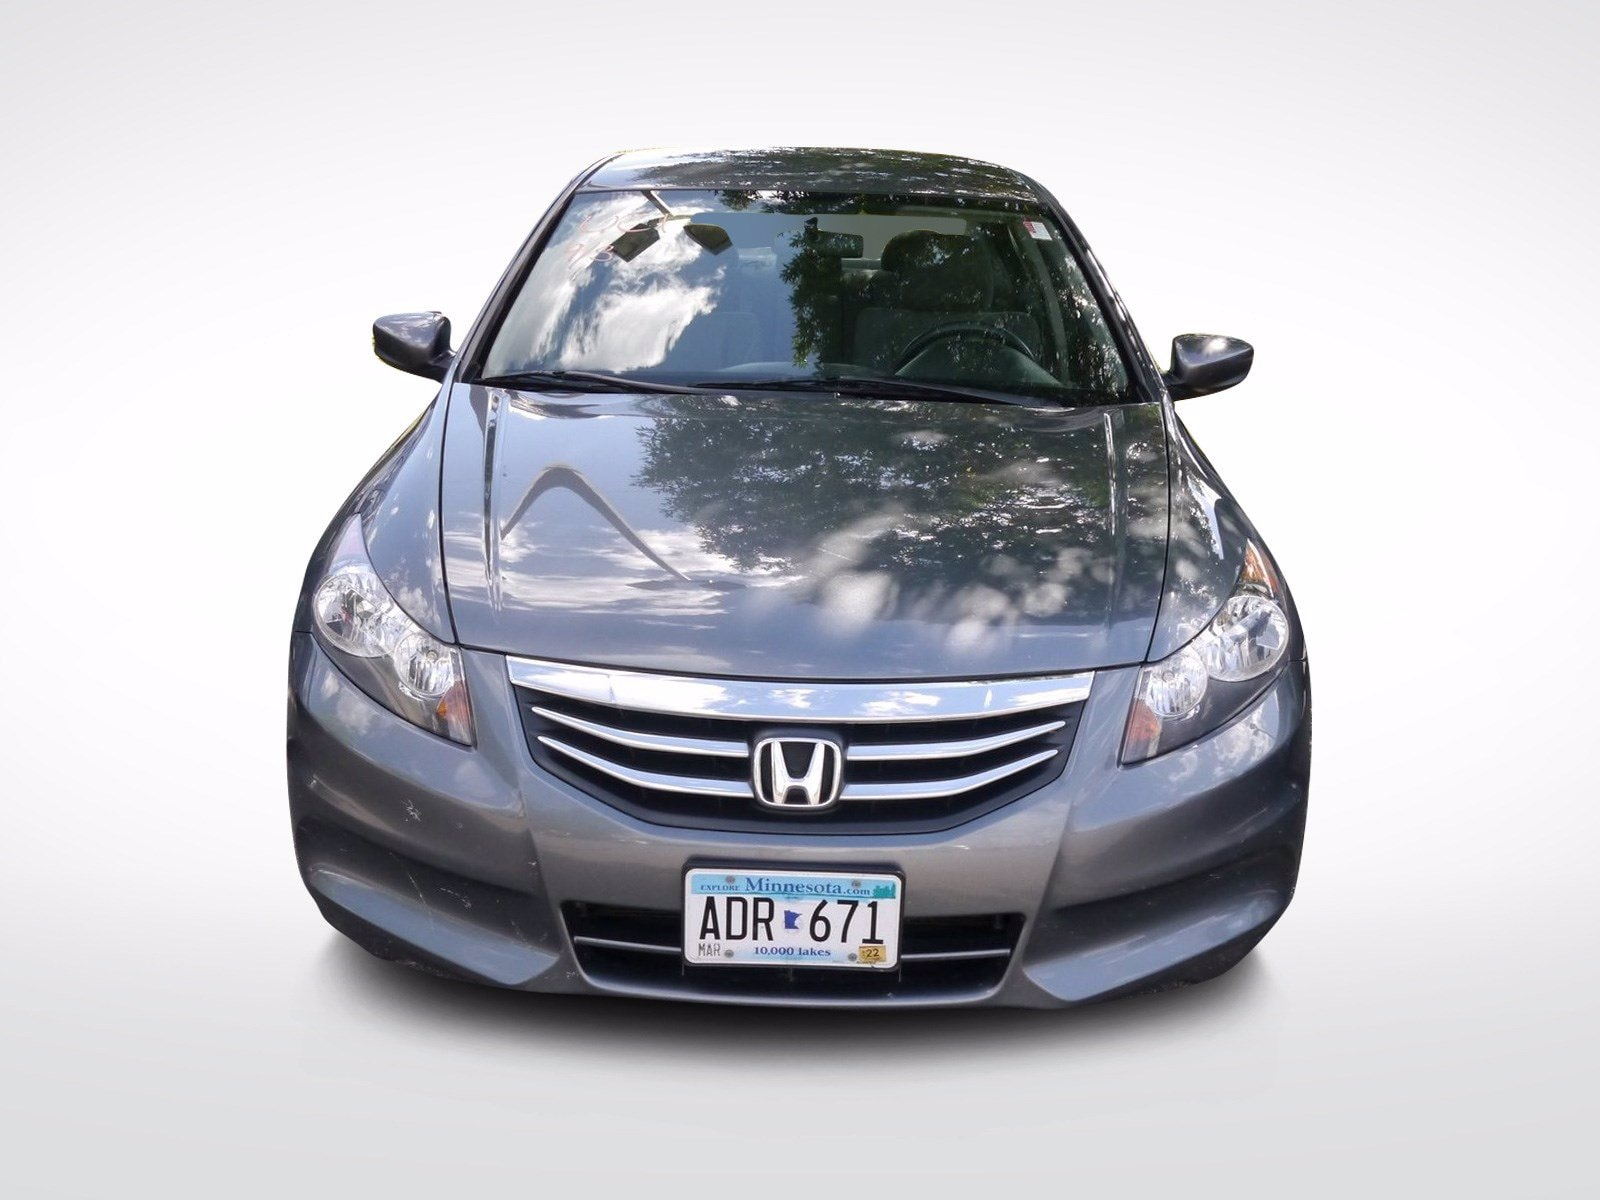 Used 2011 Honda Accord LX-P with VIN 1HGCP2F46BA097878 for sale in Baxter, Minnesota